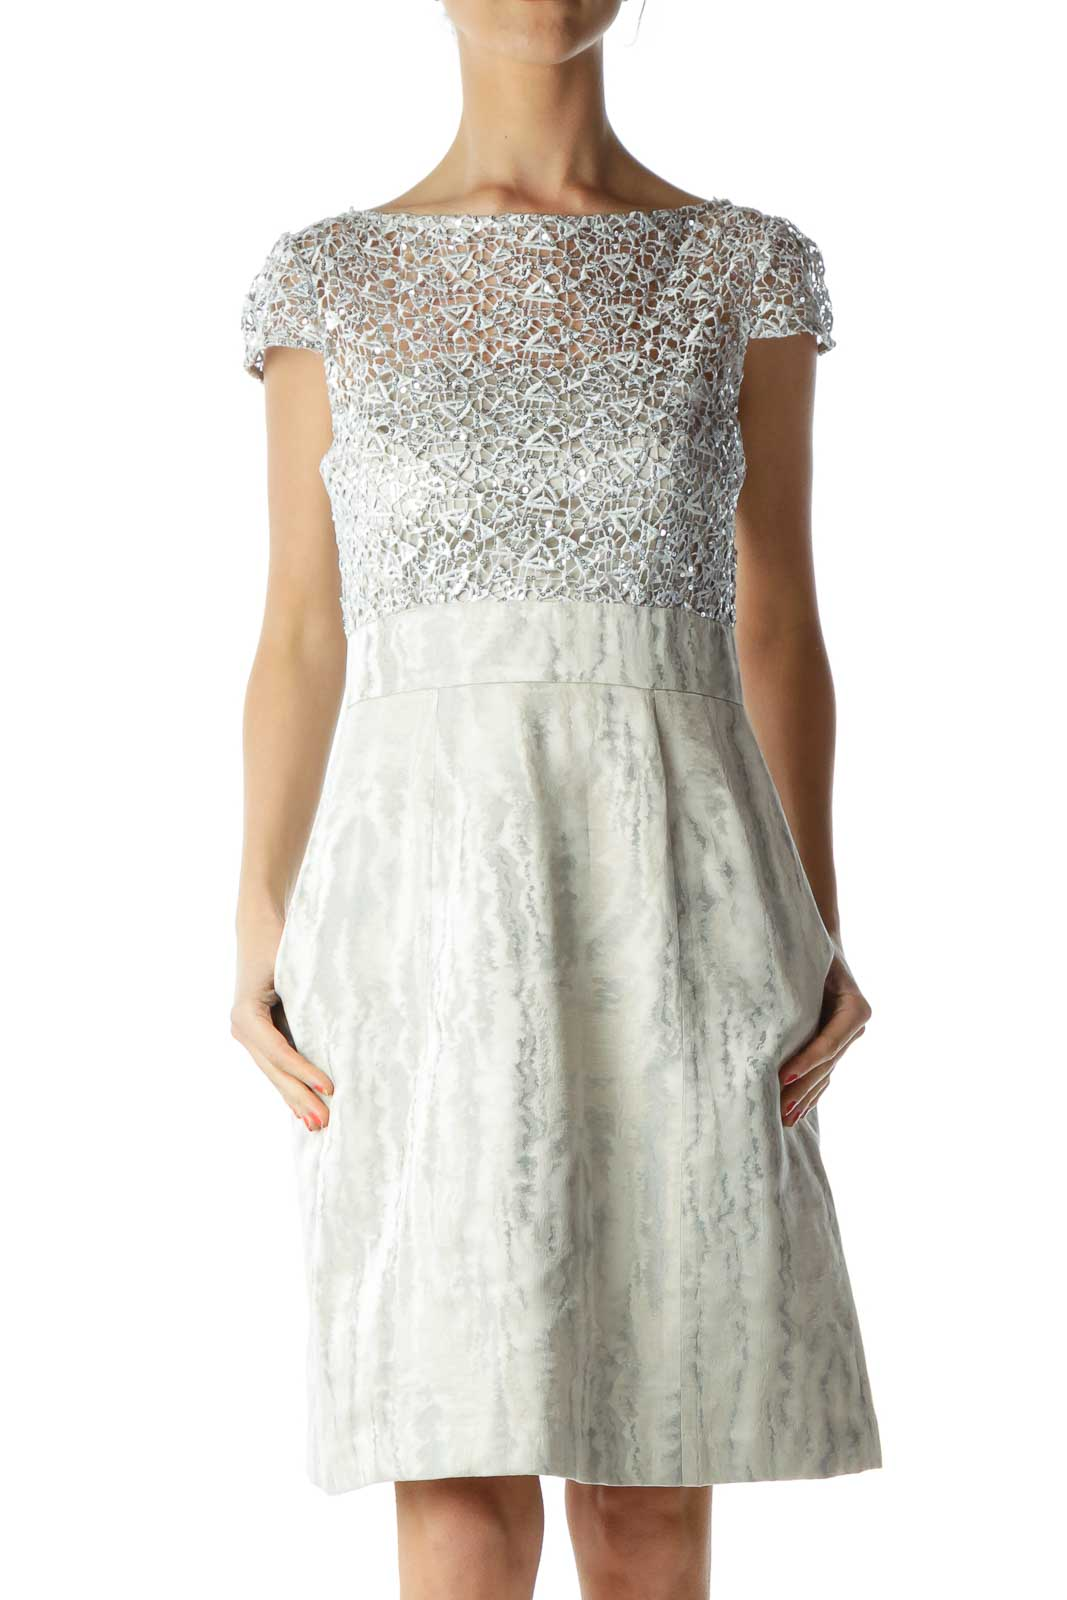 Cream Silver Sequined Metallic Cocktail Dress Front